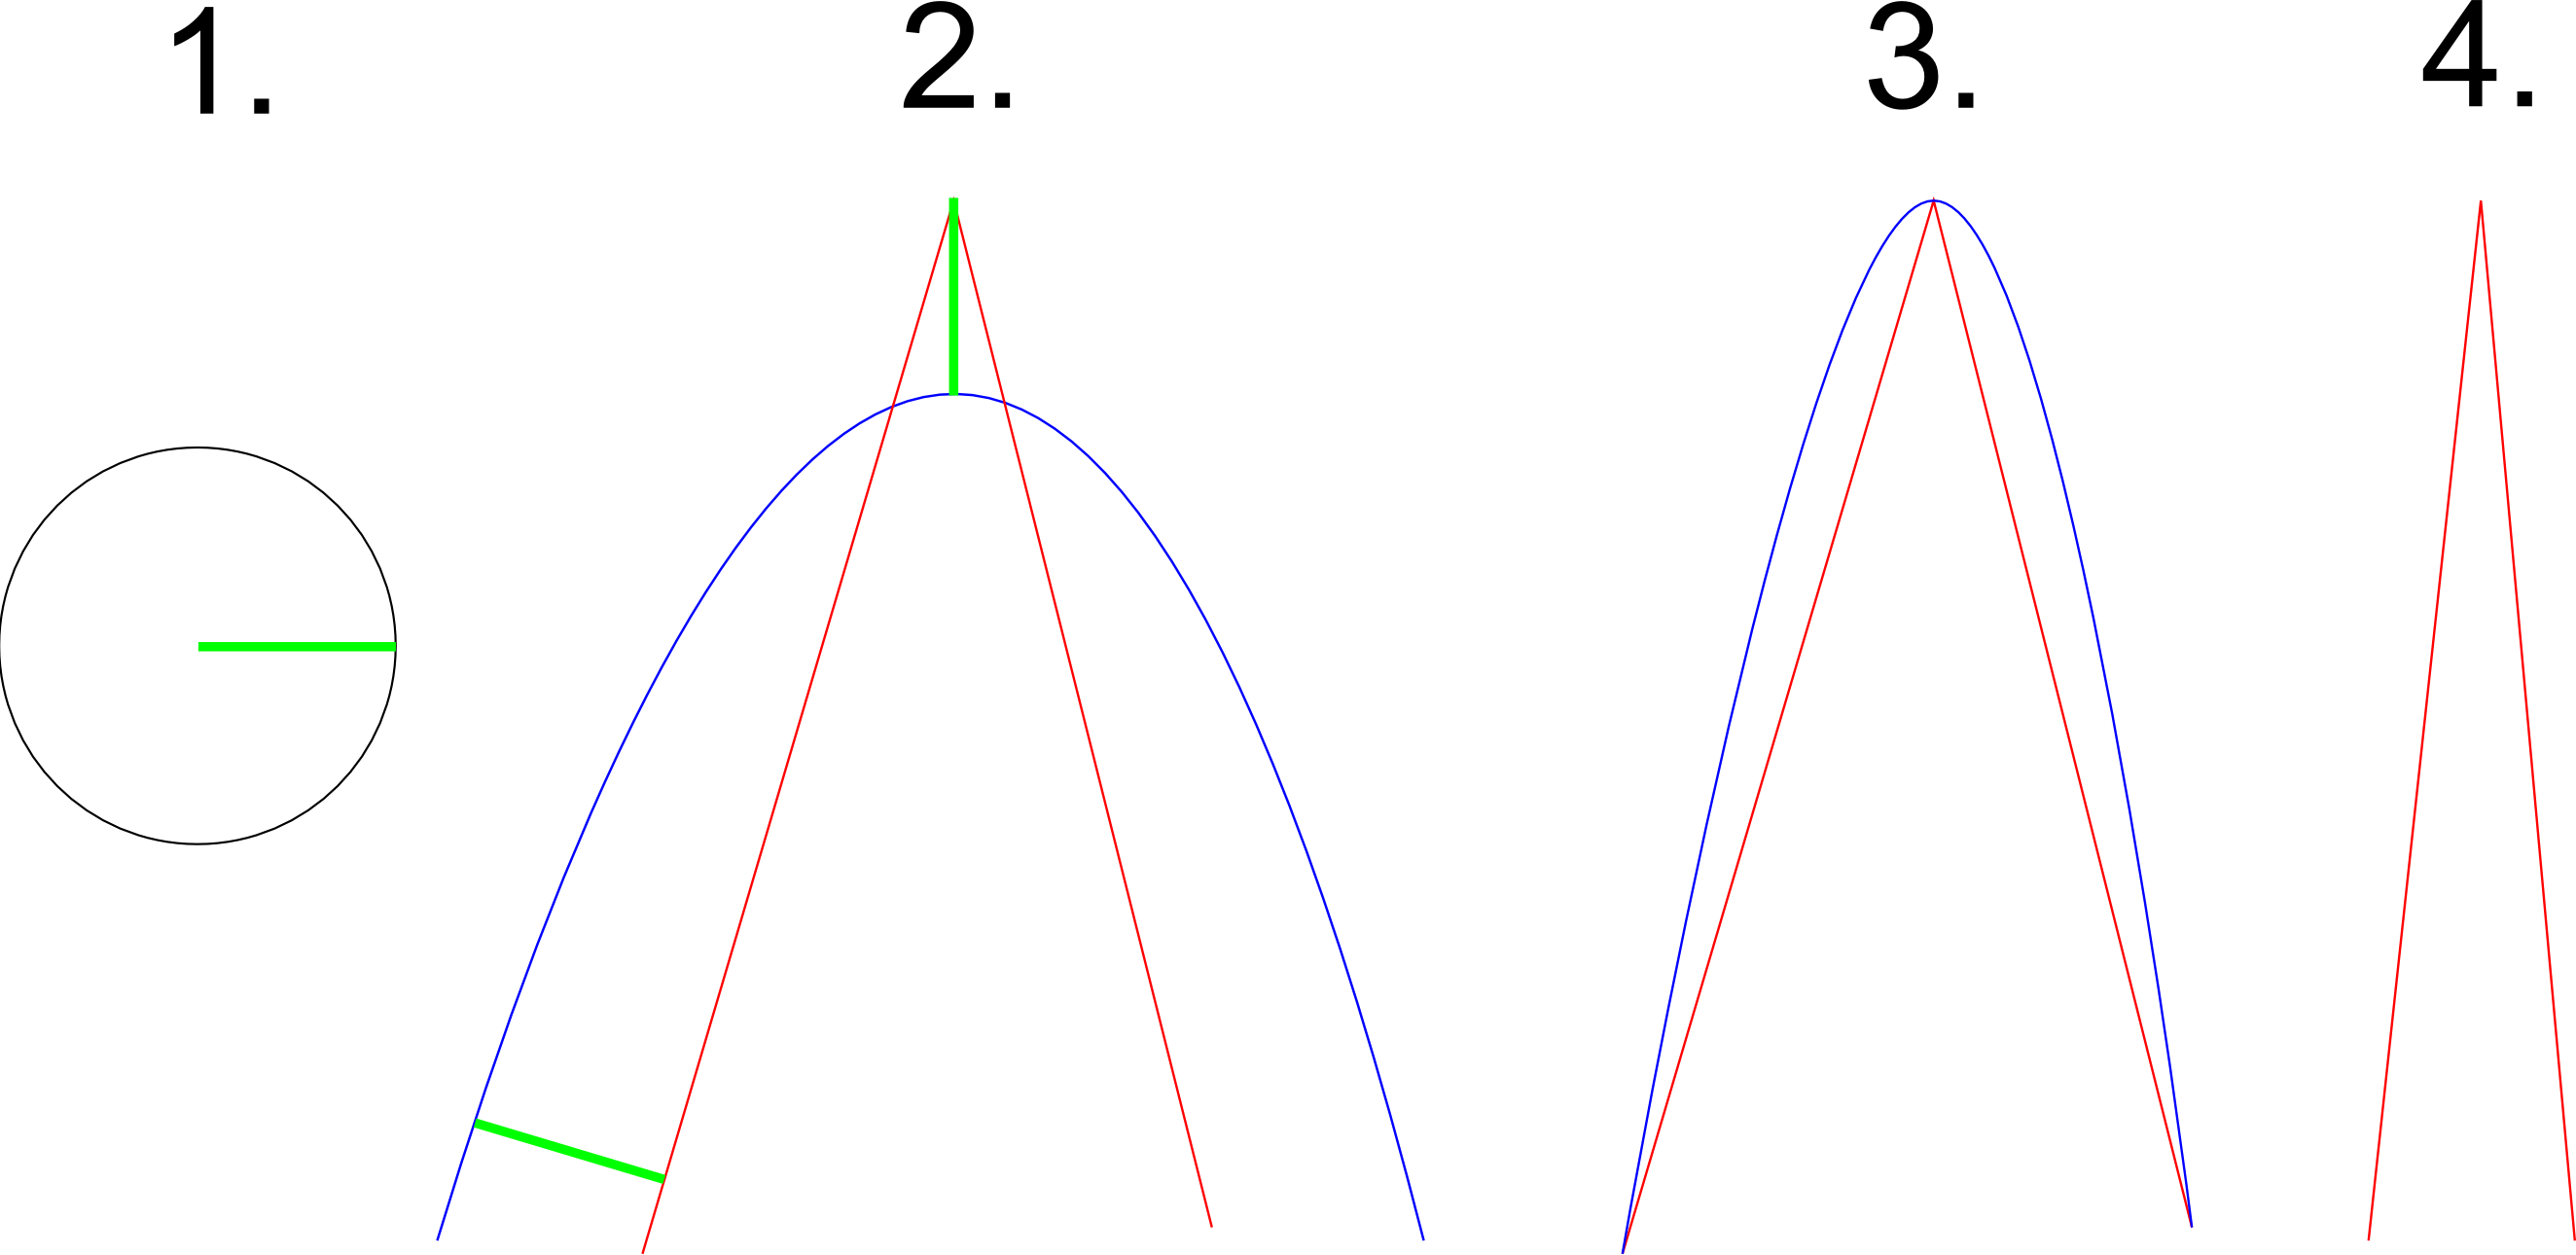 Python approximating data with. Svg paths bézier curve picture black and white